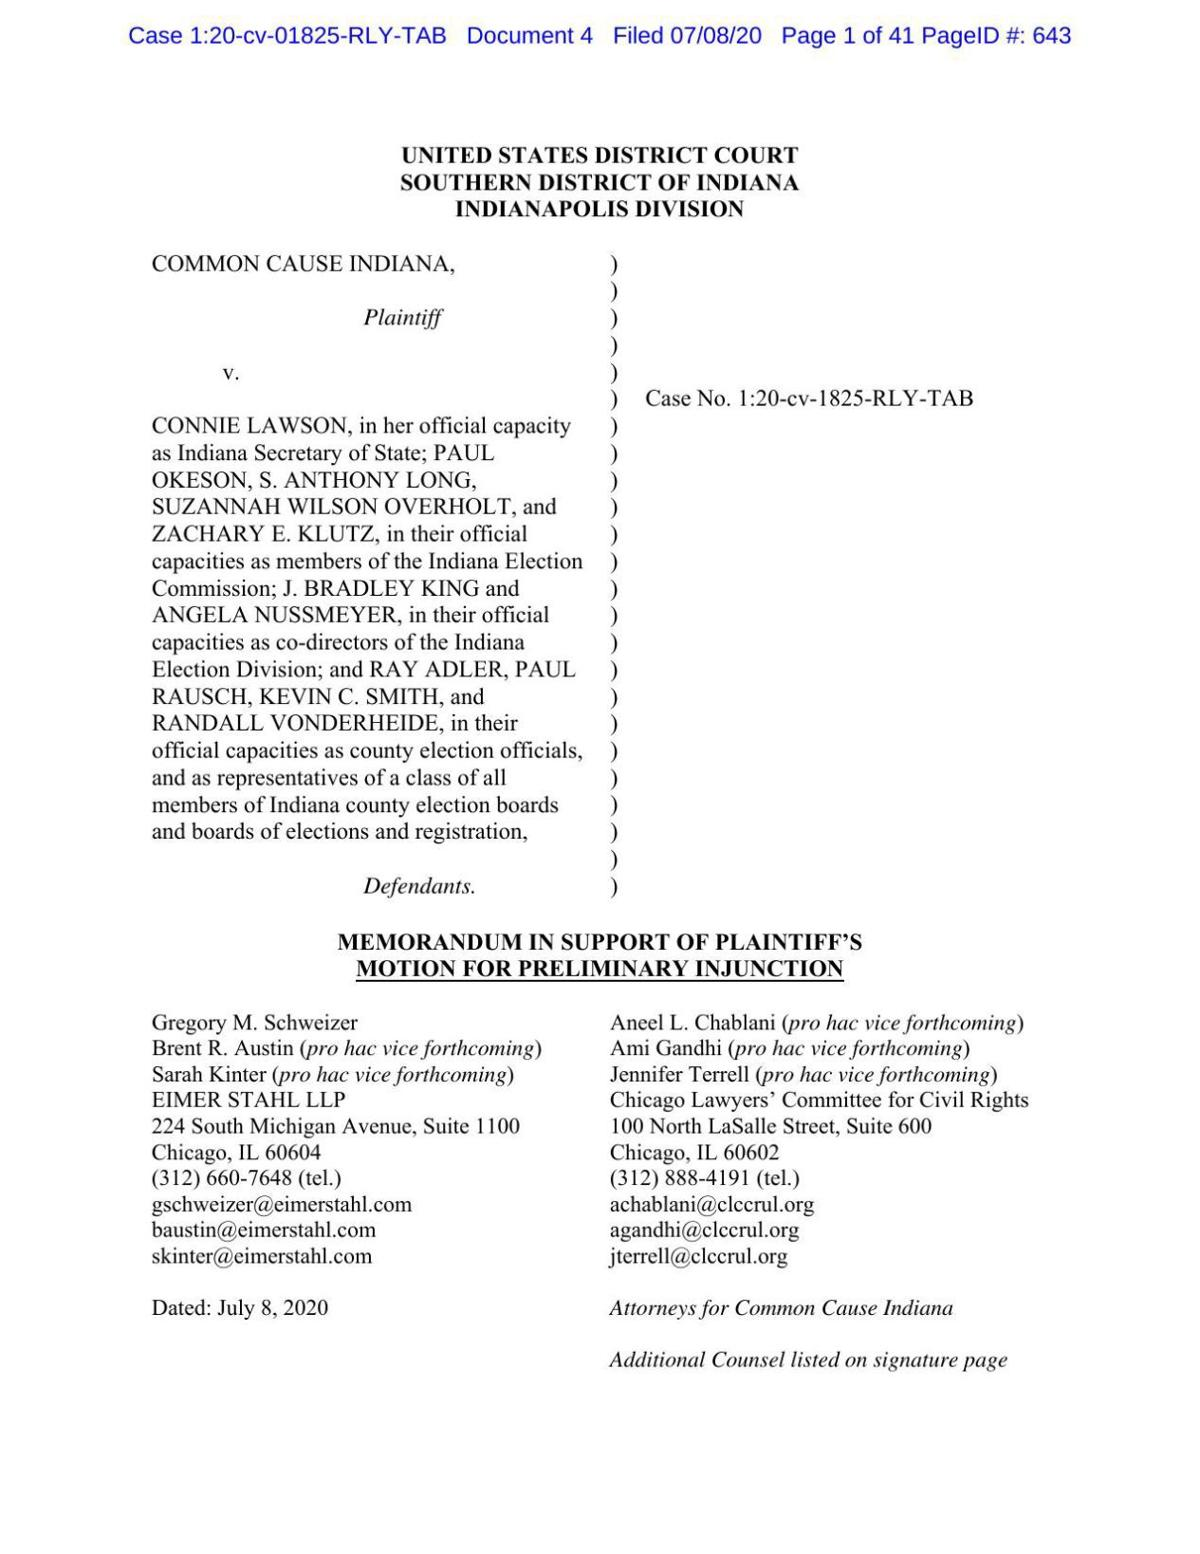 Common Cause v. Lawson motion for preliminary injunction